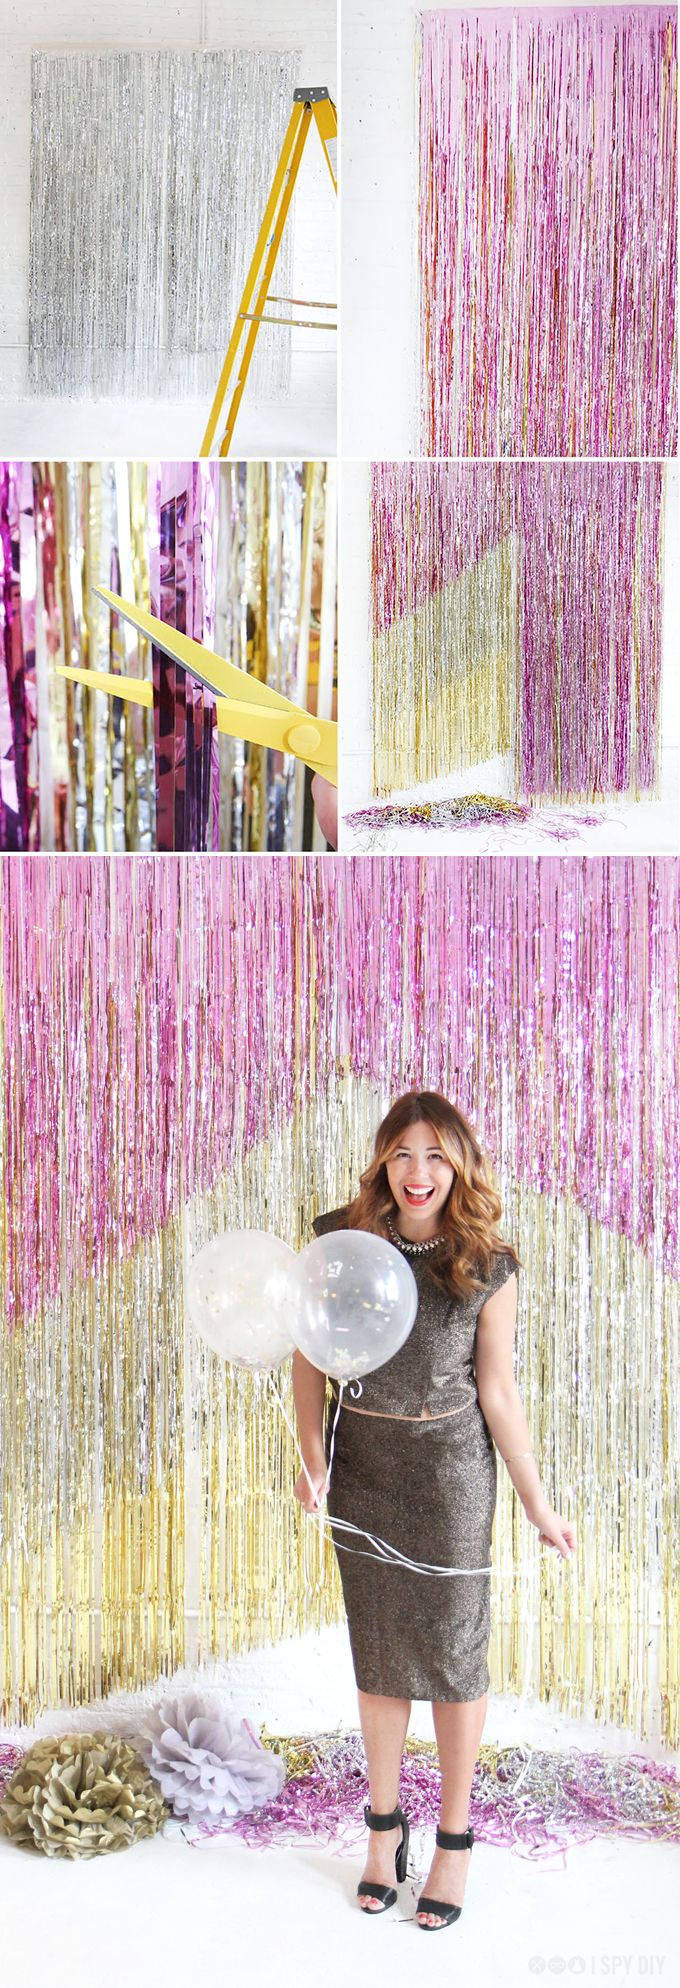 The perfect photobooth backdrop for New Year's Eve!